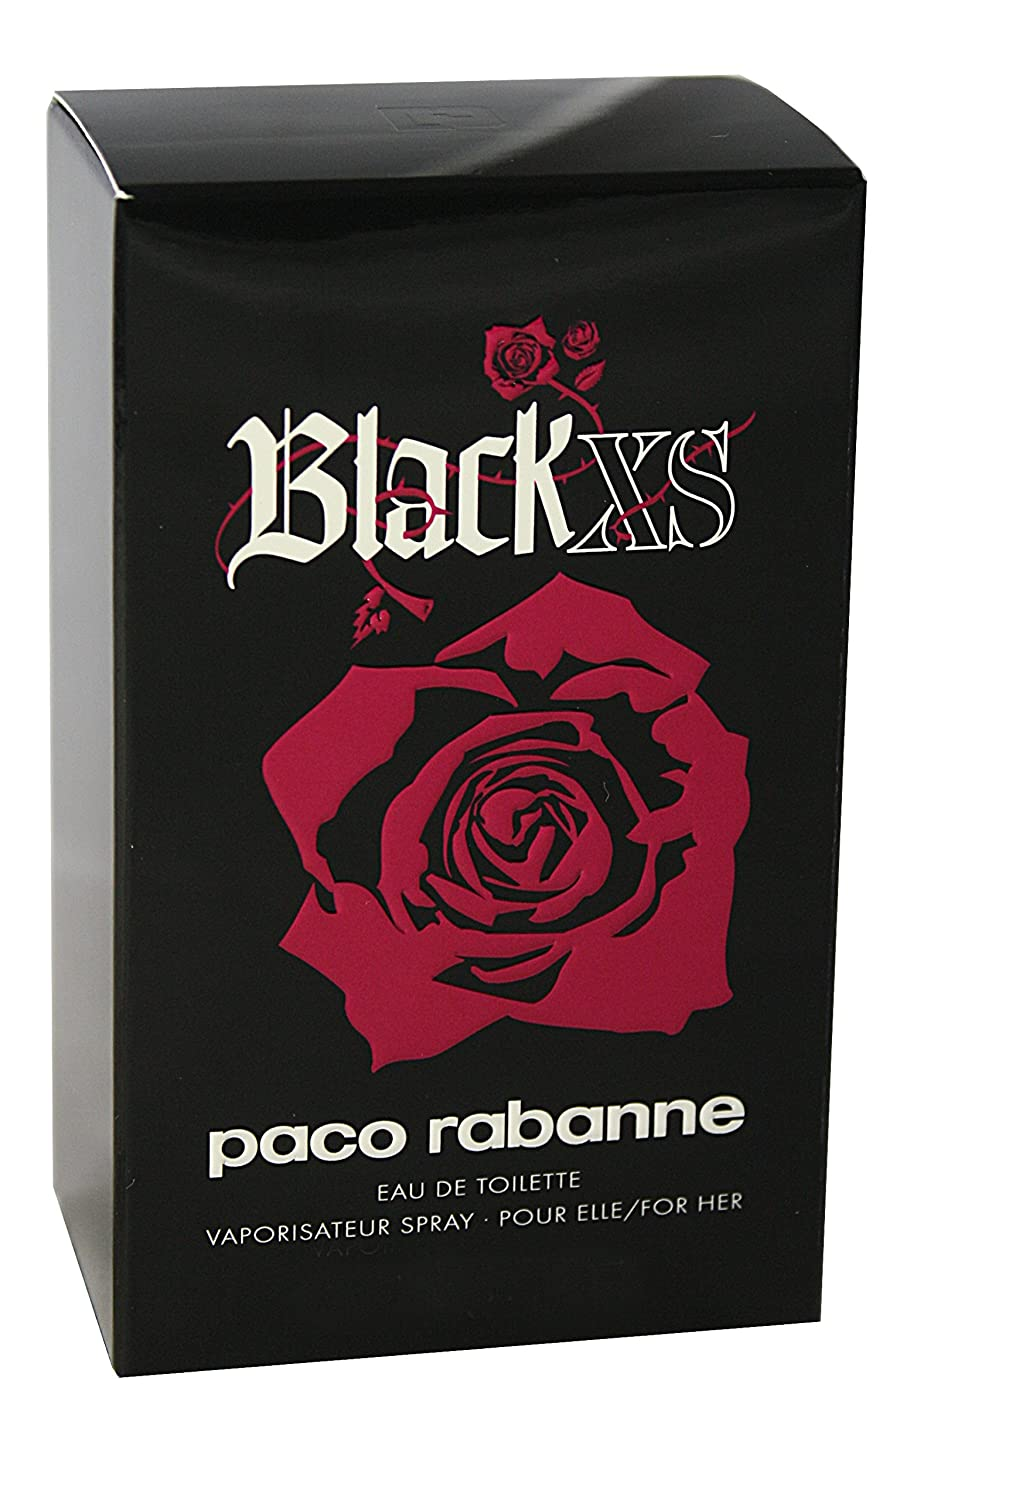 Paco Rabanne Black Xs For Her Eau de Toilette Vaporizador 80 ml: Amazon.es: Belleza